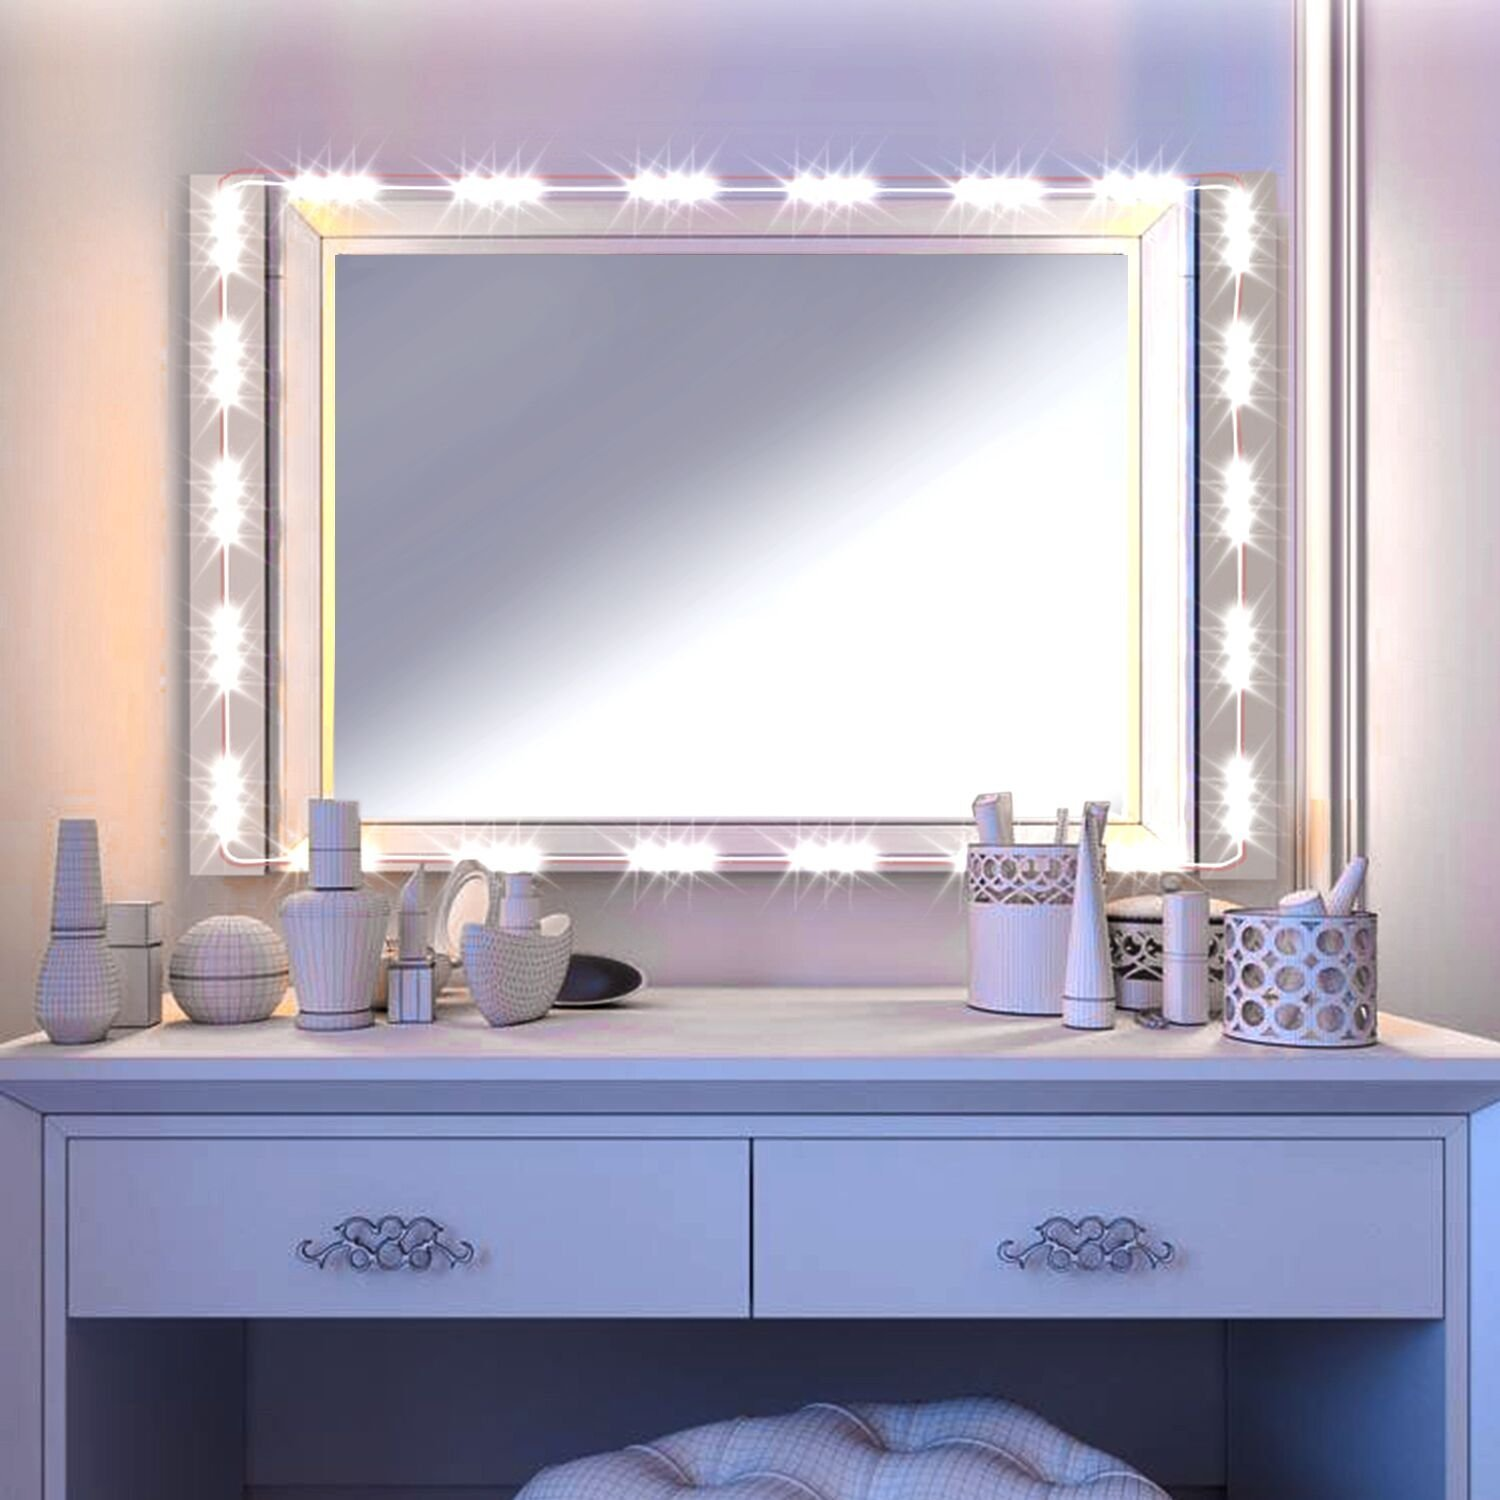 LED Vanity Mirror Lights Kit Image Hollywood Style Cosmetic Lights with Dimmer Controller and Strip Sticker 13ft 75 LEDs Plug in(Standard White)